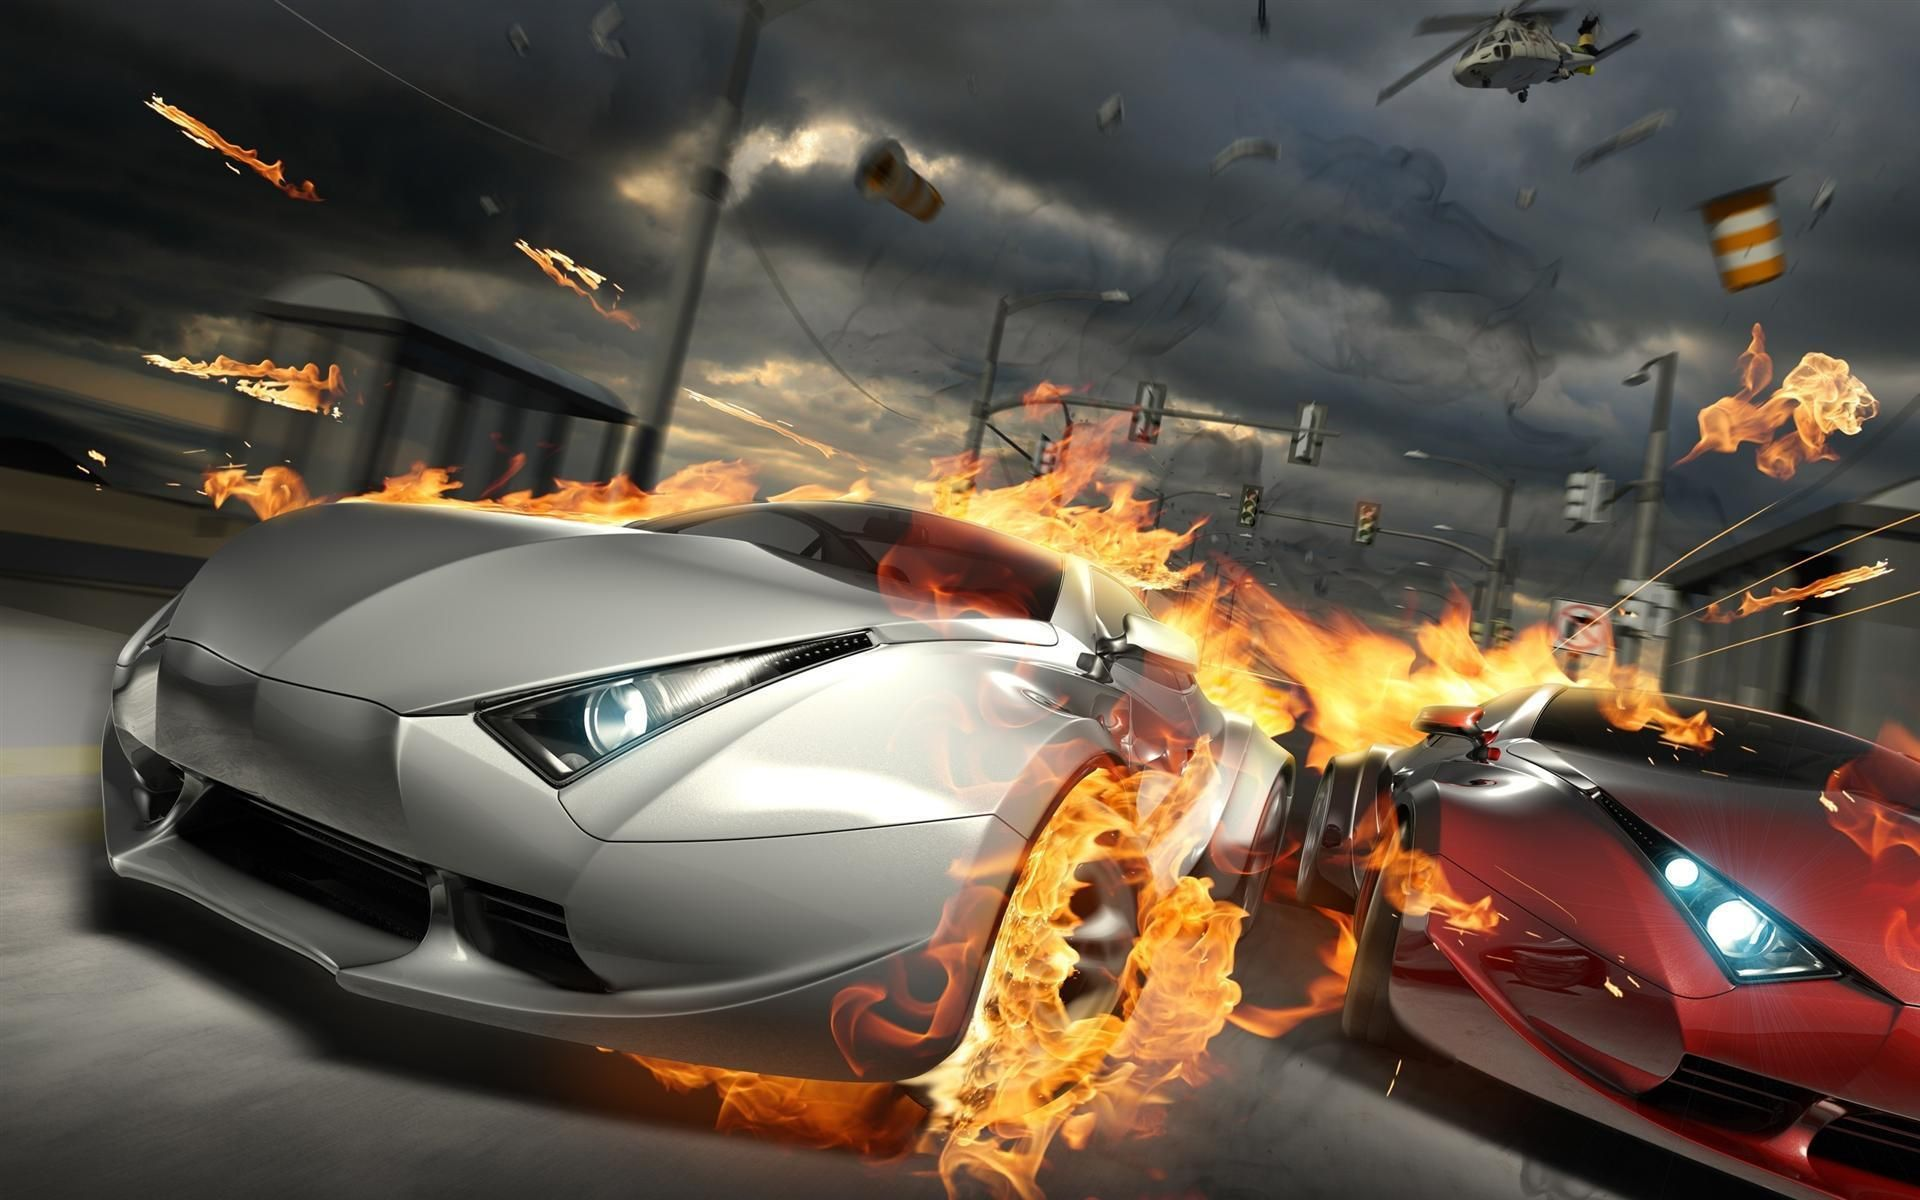 3d cars wallpaper hd - Cool Cars Wallpapers 3d